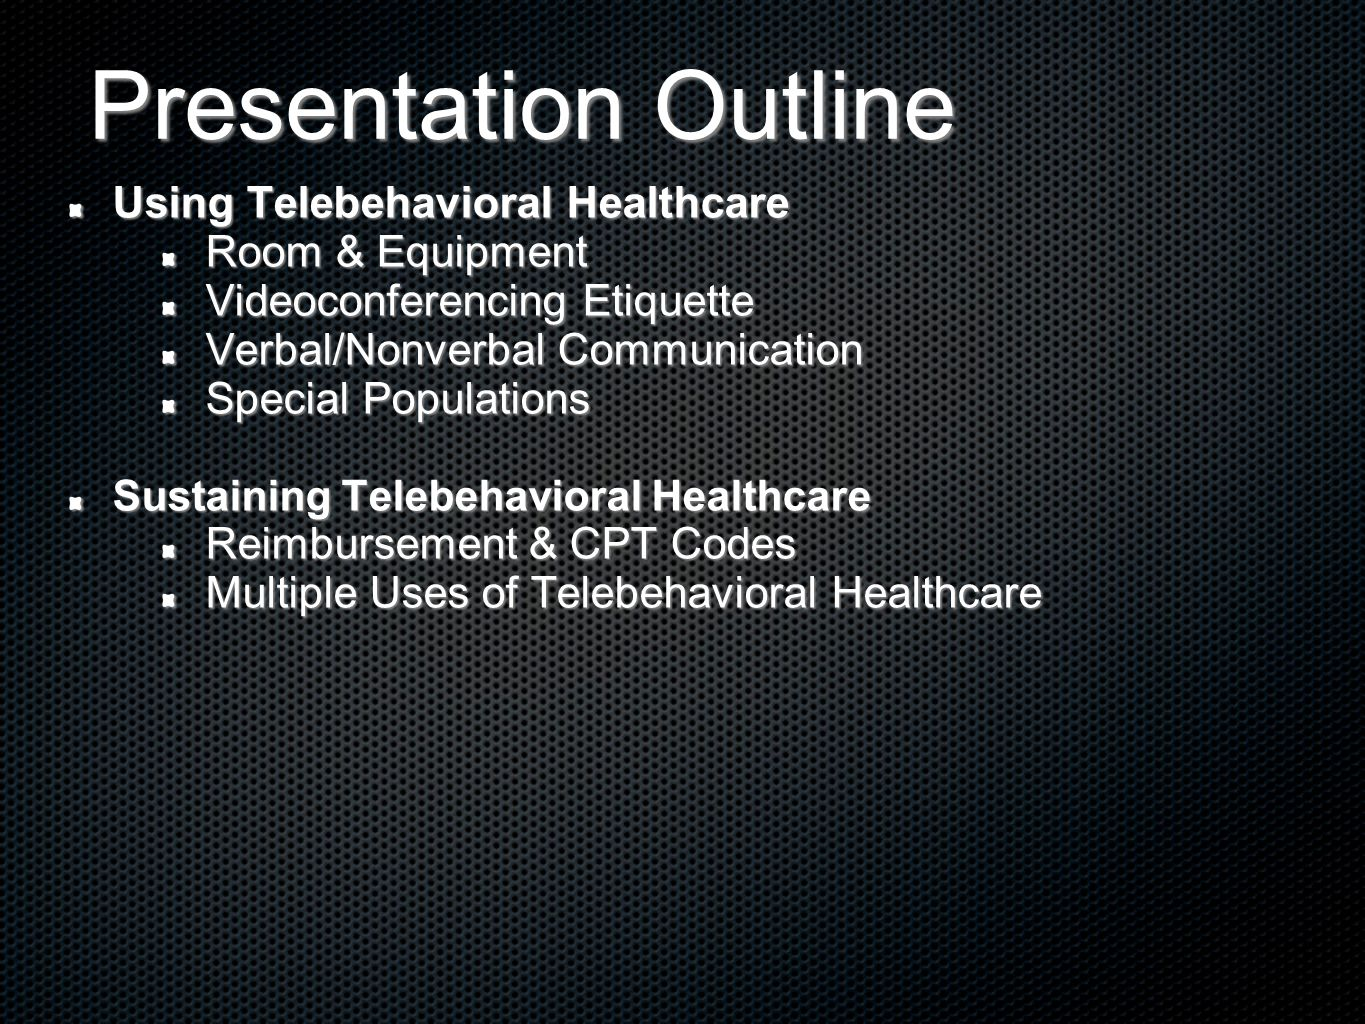 Presentation Outline Using Telebehavioral Healthcare Room & Equipment Videoconferencing Etiquette Verbal/Nonverbal Communication Special Populations Sustaining Telebehavioral Healthcare Reimbursement & CPT Codes Multiple Uses of Telebehavioral Healthcare